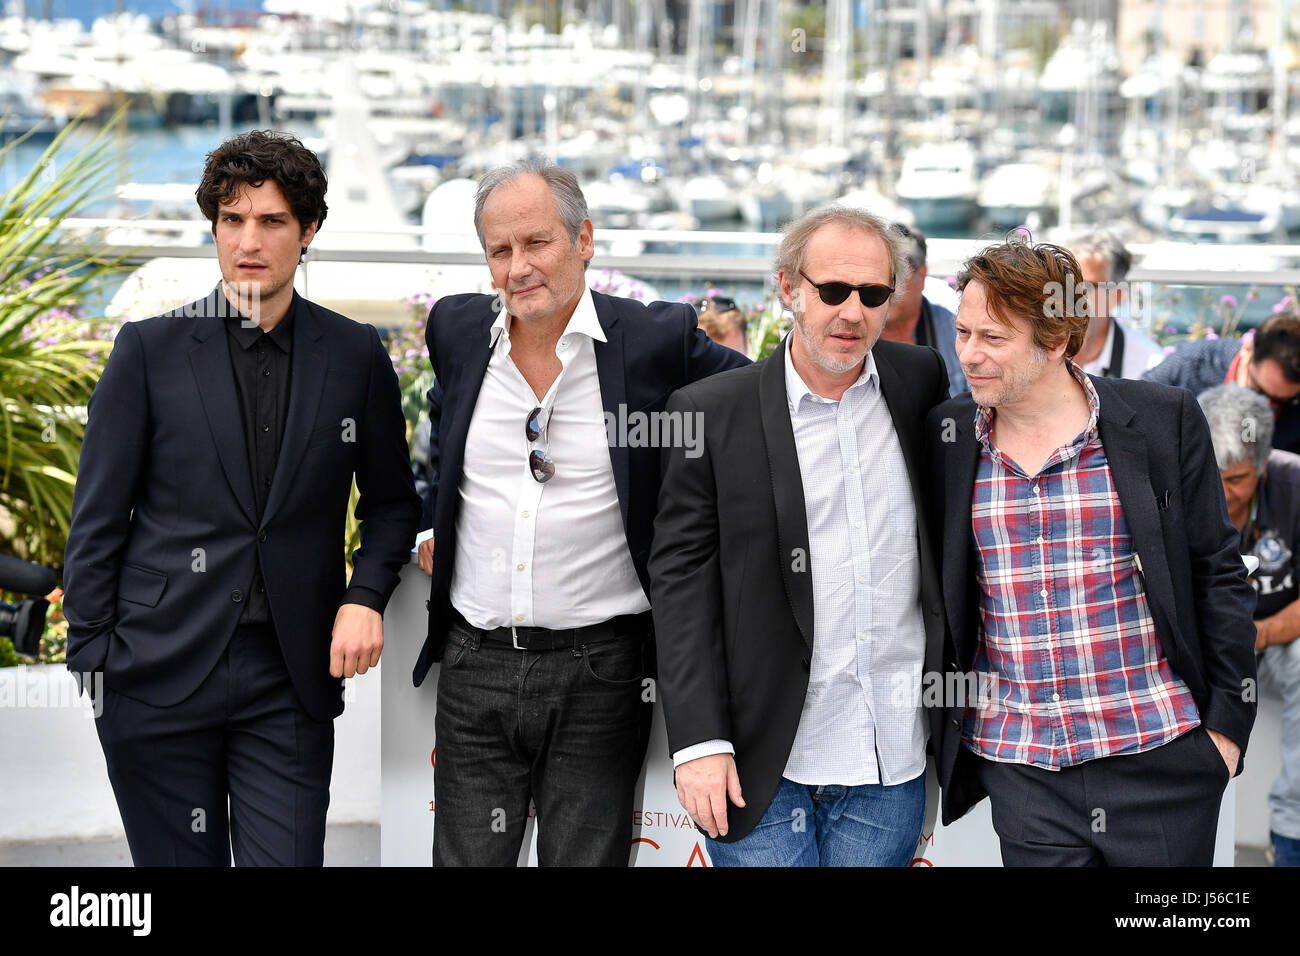 """Actors Louis Garrel (1st L), Hippolyte Girardot (2nd L), Mathieu Amalric  (1st R) and director Arnaud Desplechin (2nd R) of the film """"Ismael's  Ghosts"""" pose ..."""